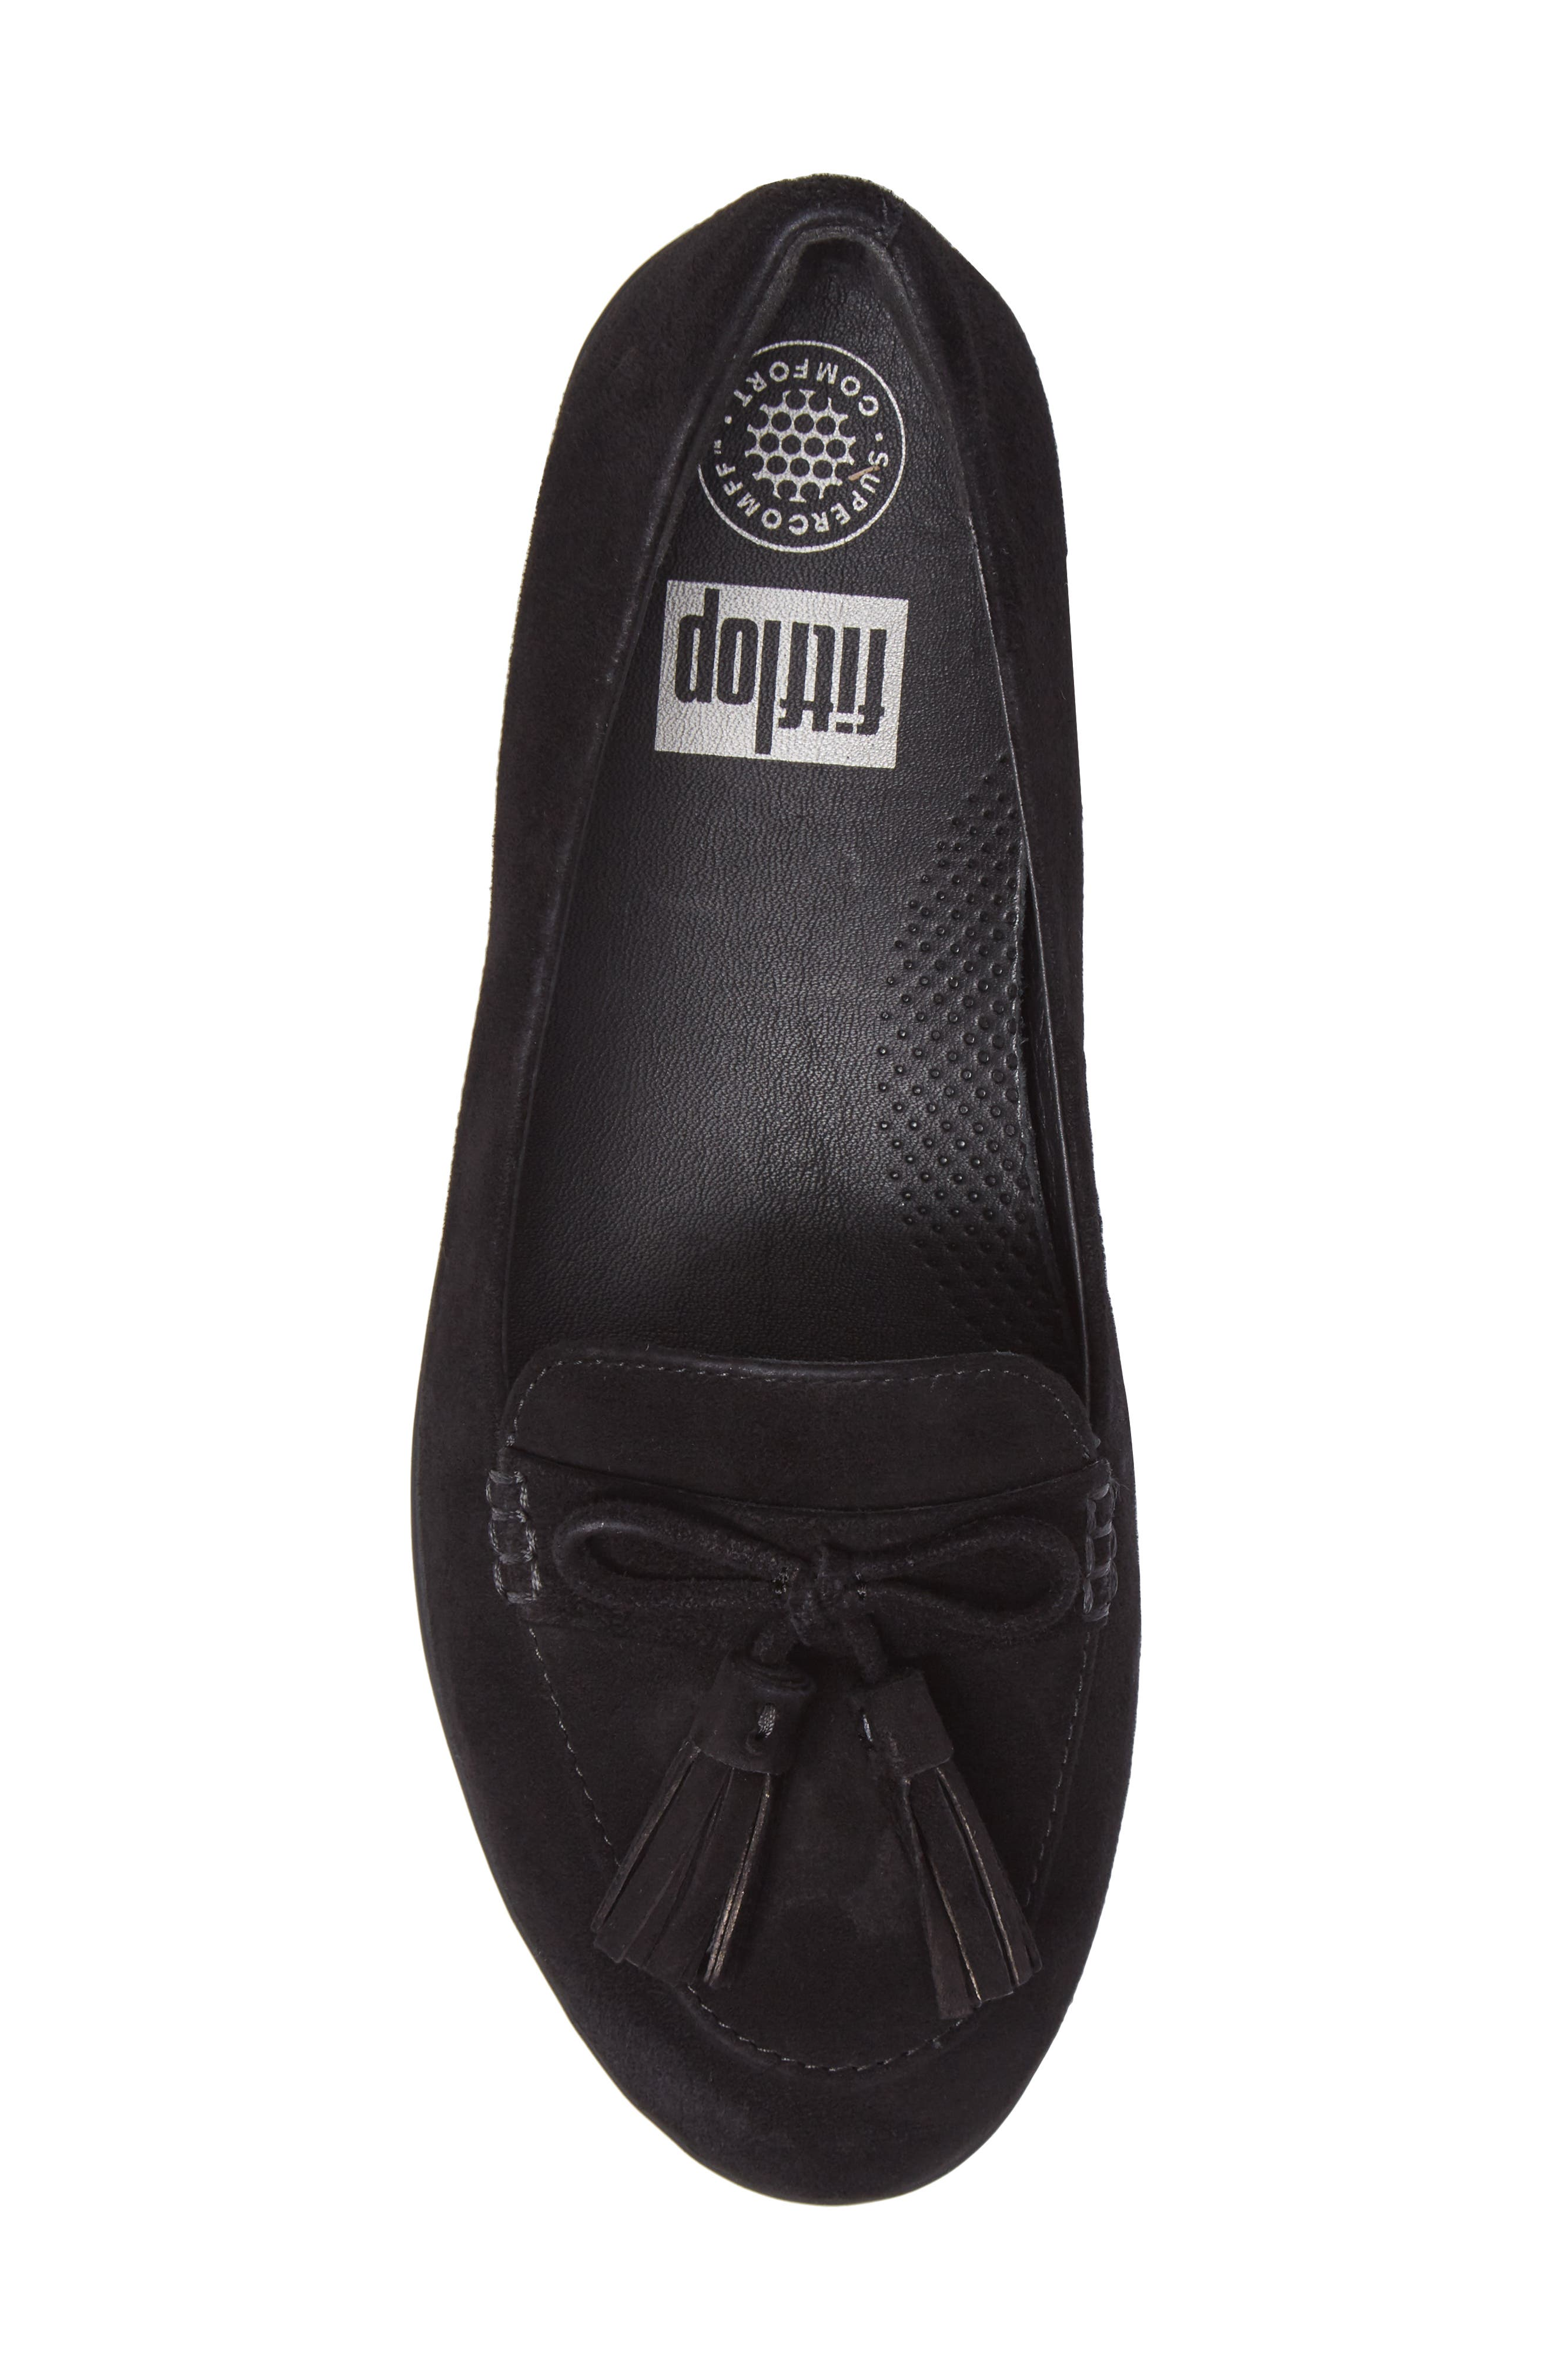 Tassel Bow Sneakerloafer<sup>™</sup> Water Repellent Flat,                             Alternate thumbnail 5, color,                             All Black